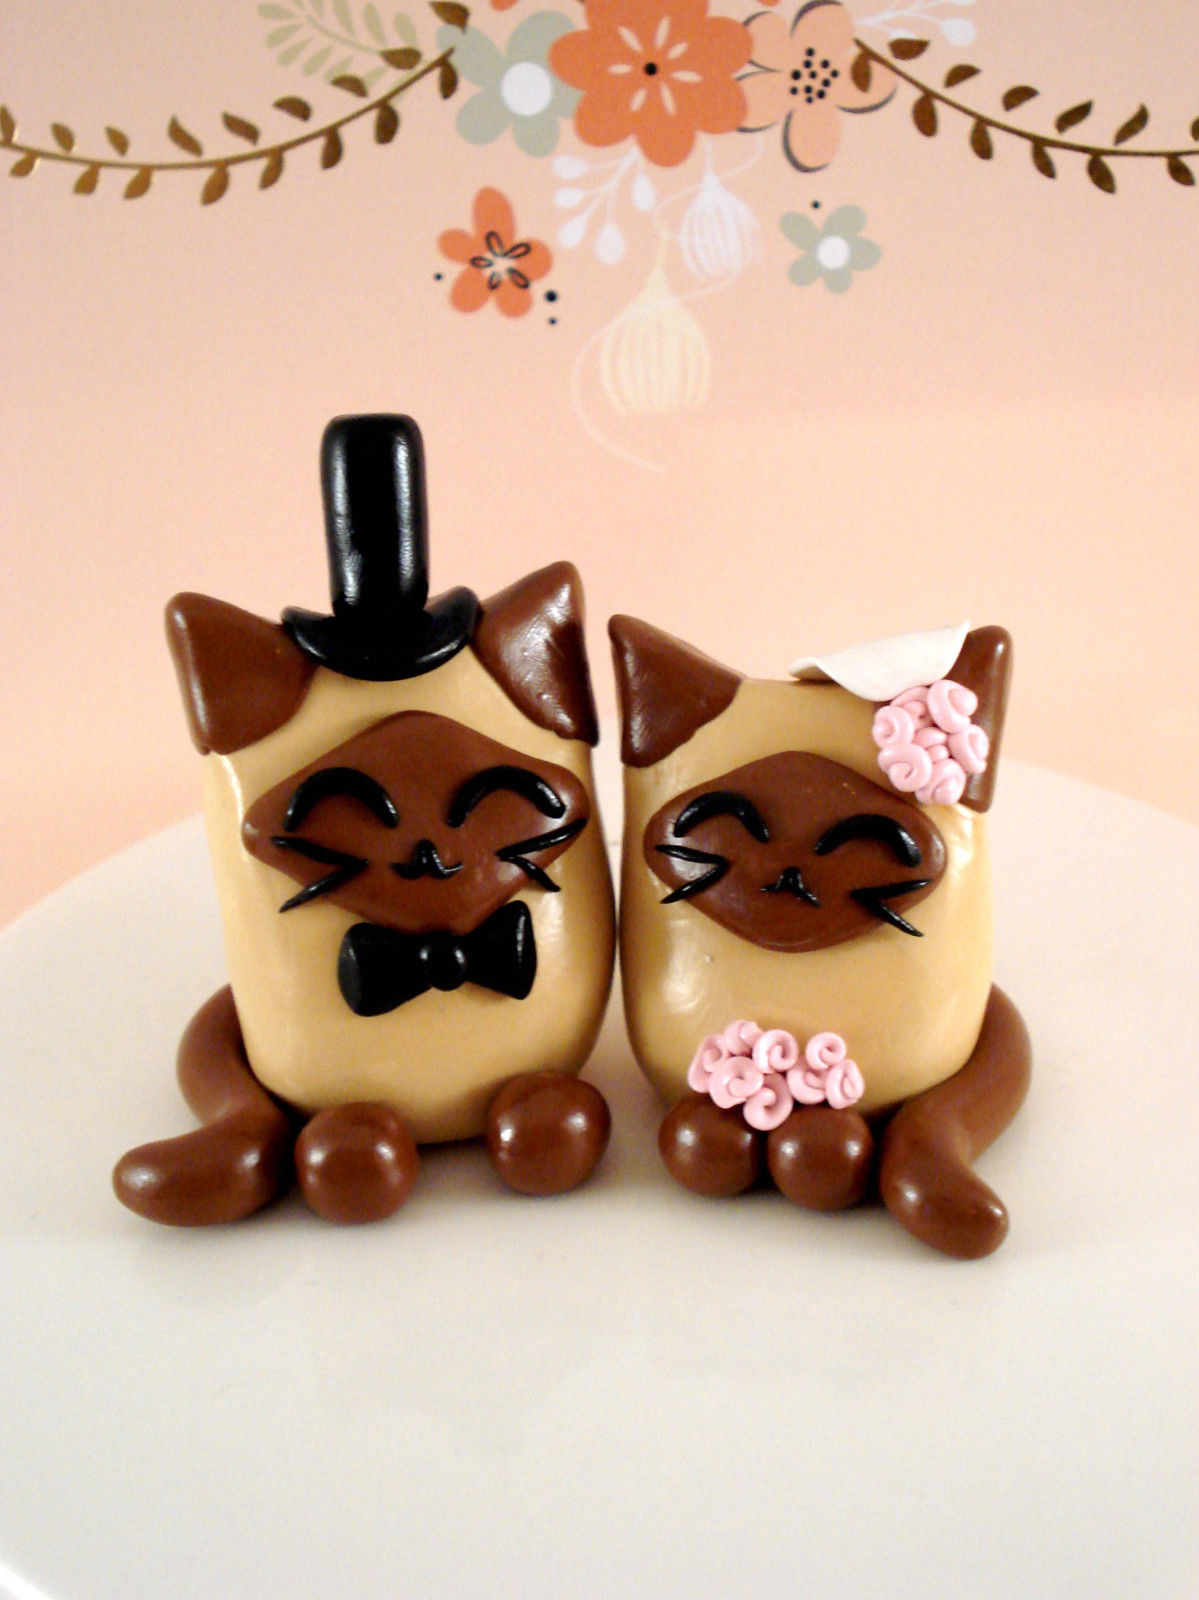 black cat wedding cake toppers cat wedding cake toppers shop cat wedding cake toppers 11859